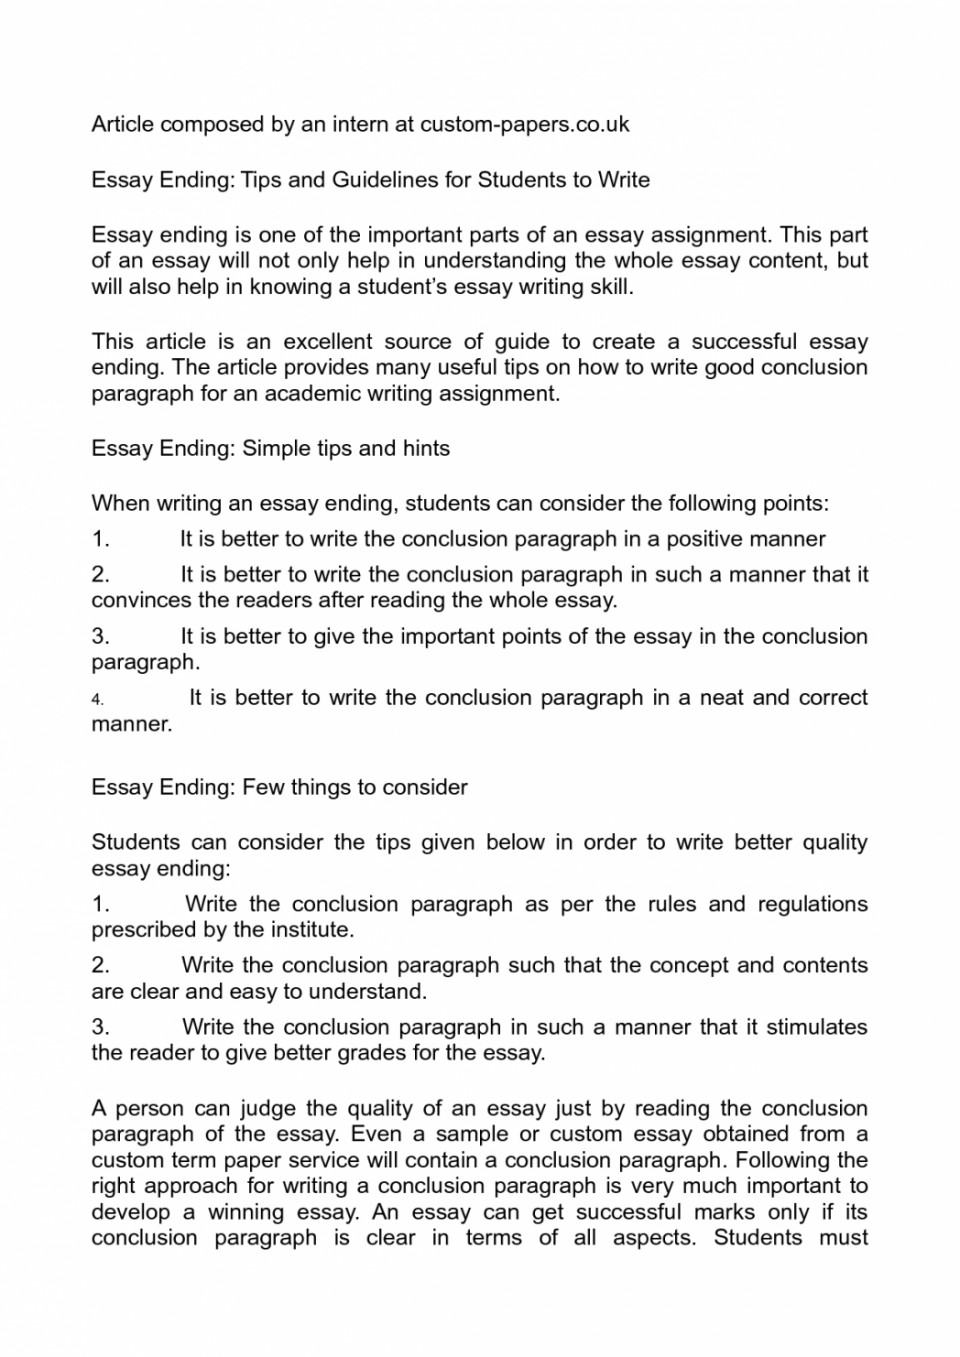 013 Good Ways To End An Essay Example Ending Is It Okay With Question Pzwnx My Wrong Outstanding Opinion Best Way Argumentative What Are Some 960